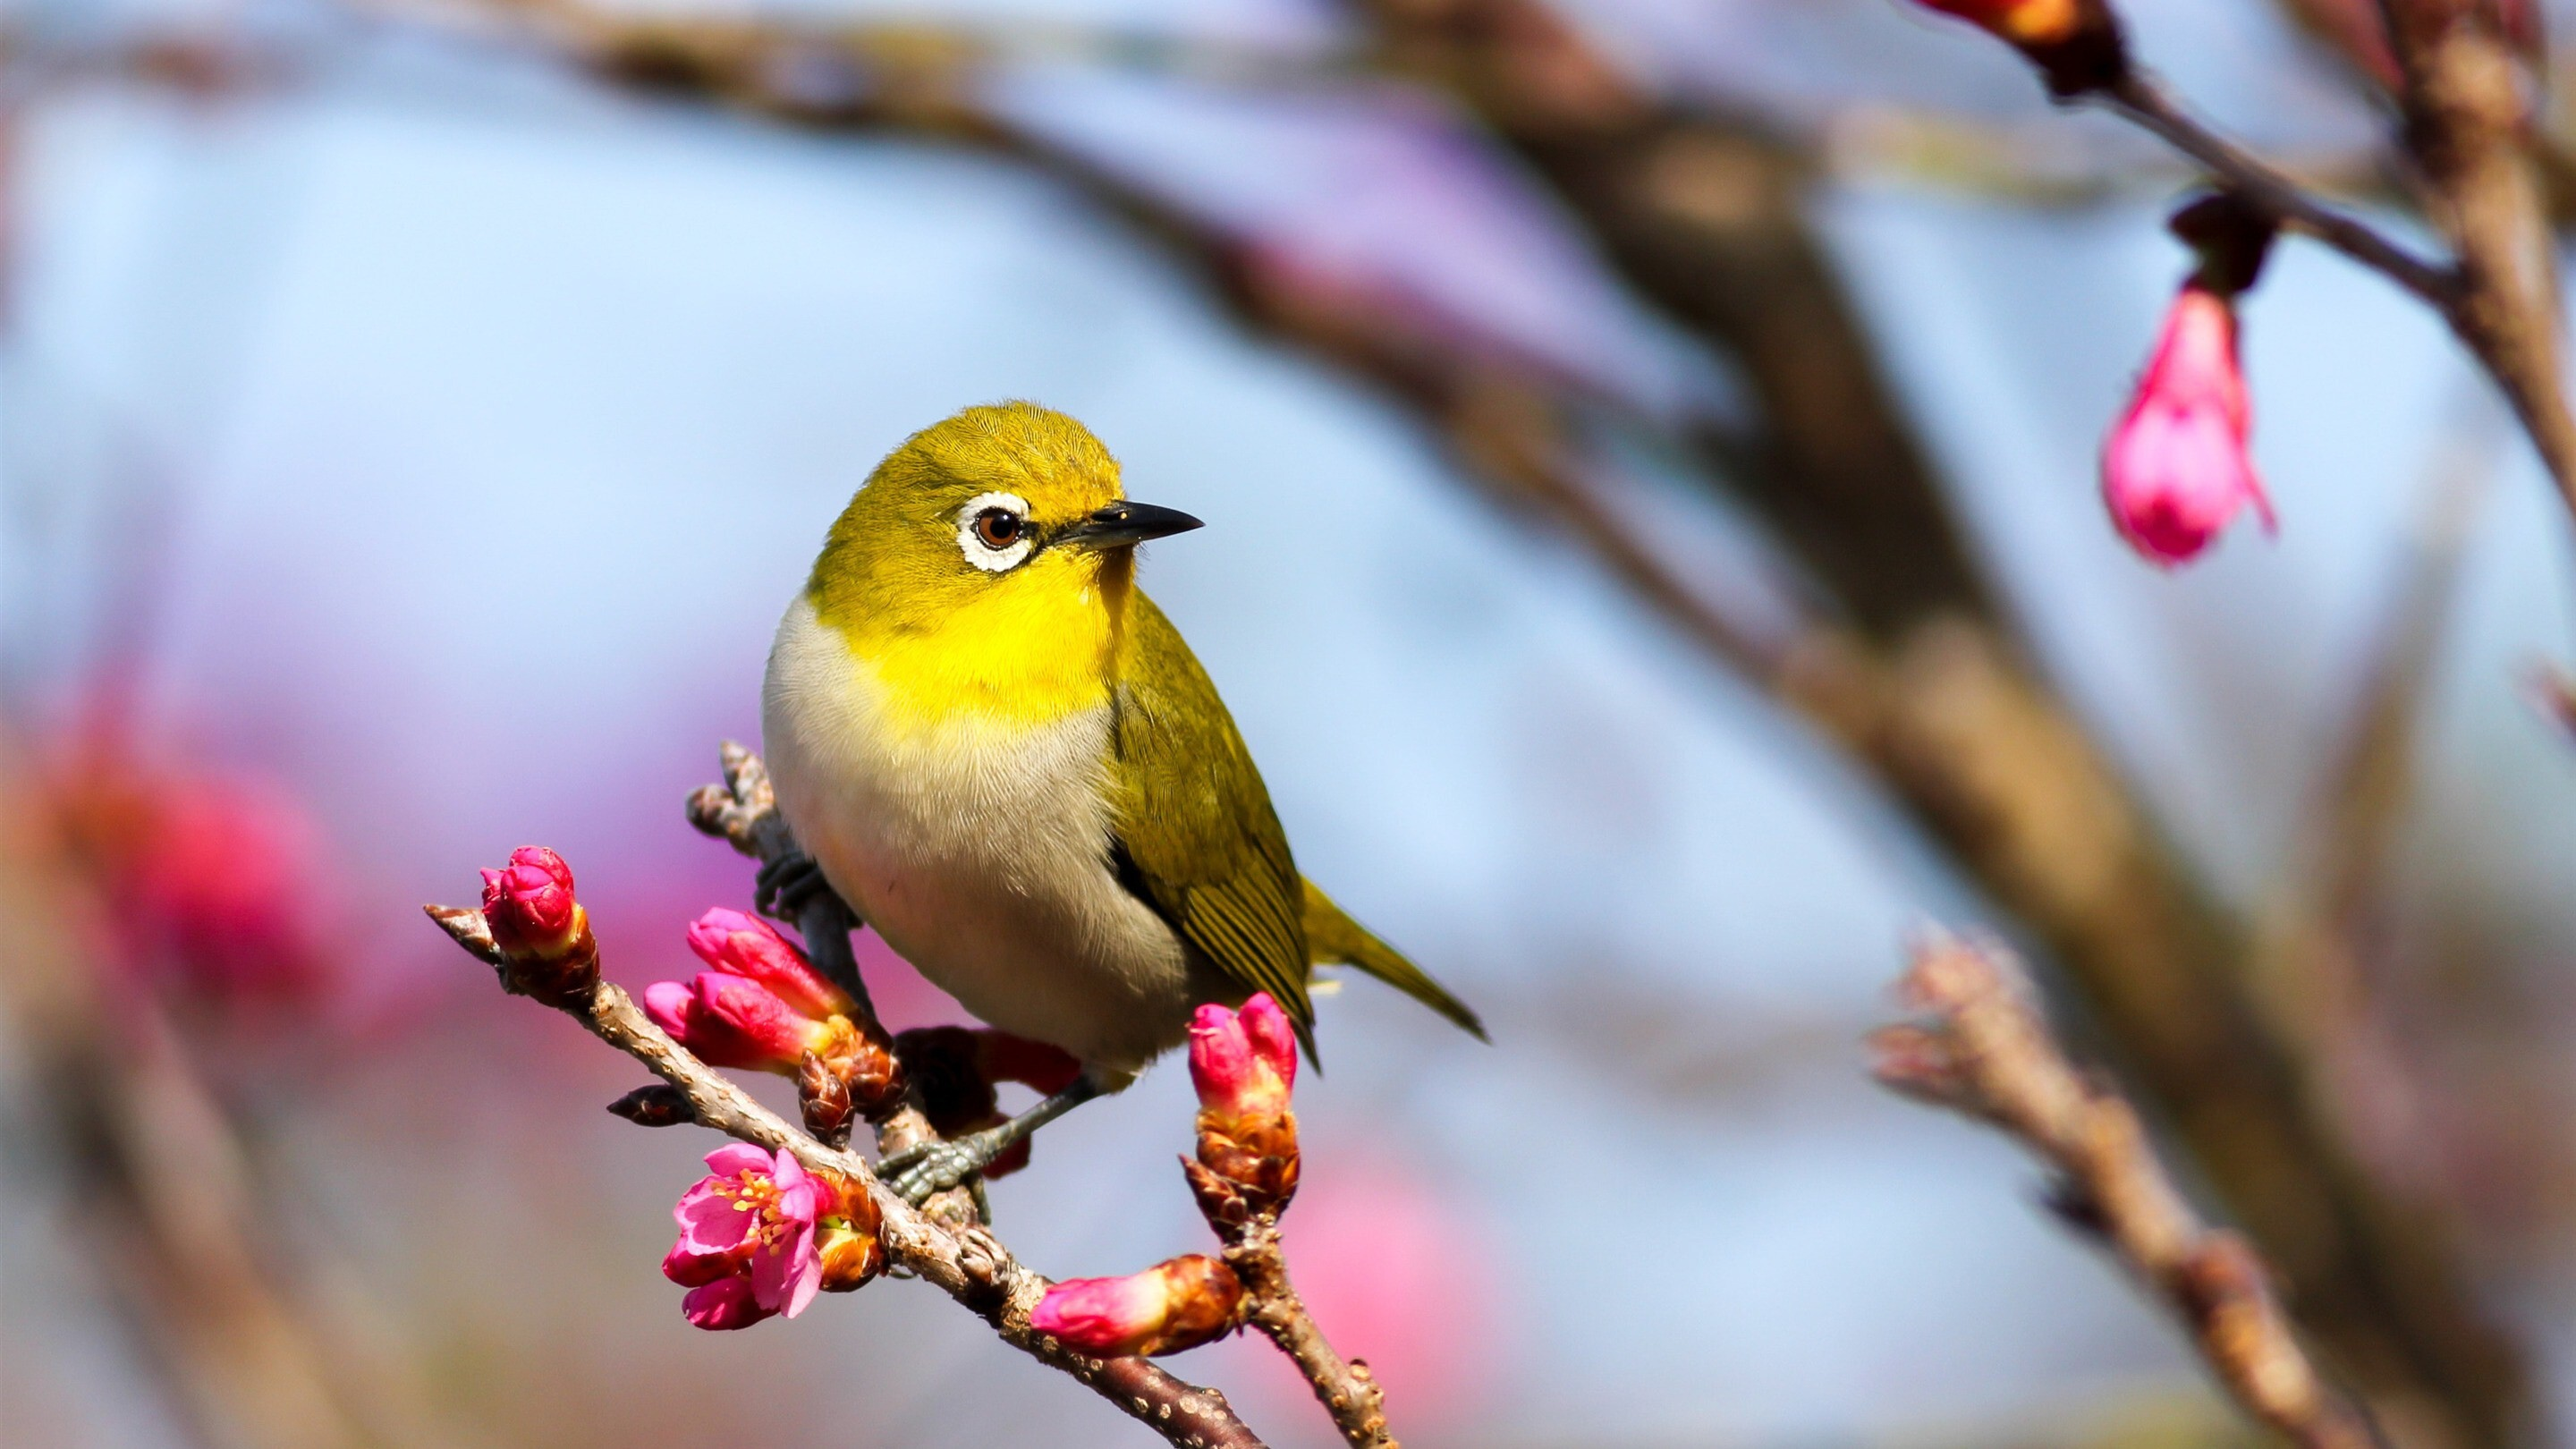 Yellow bird hd pictures hd wallpapers - Hd birds images download ...